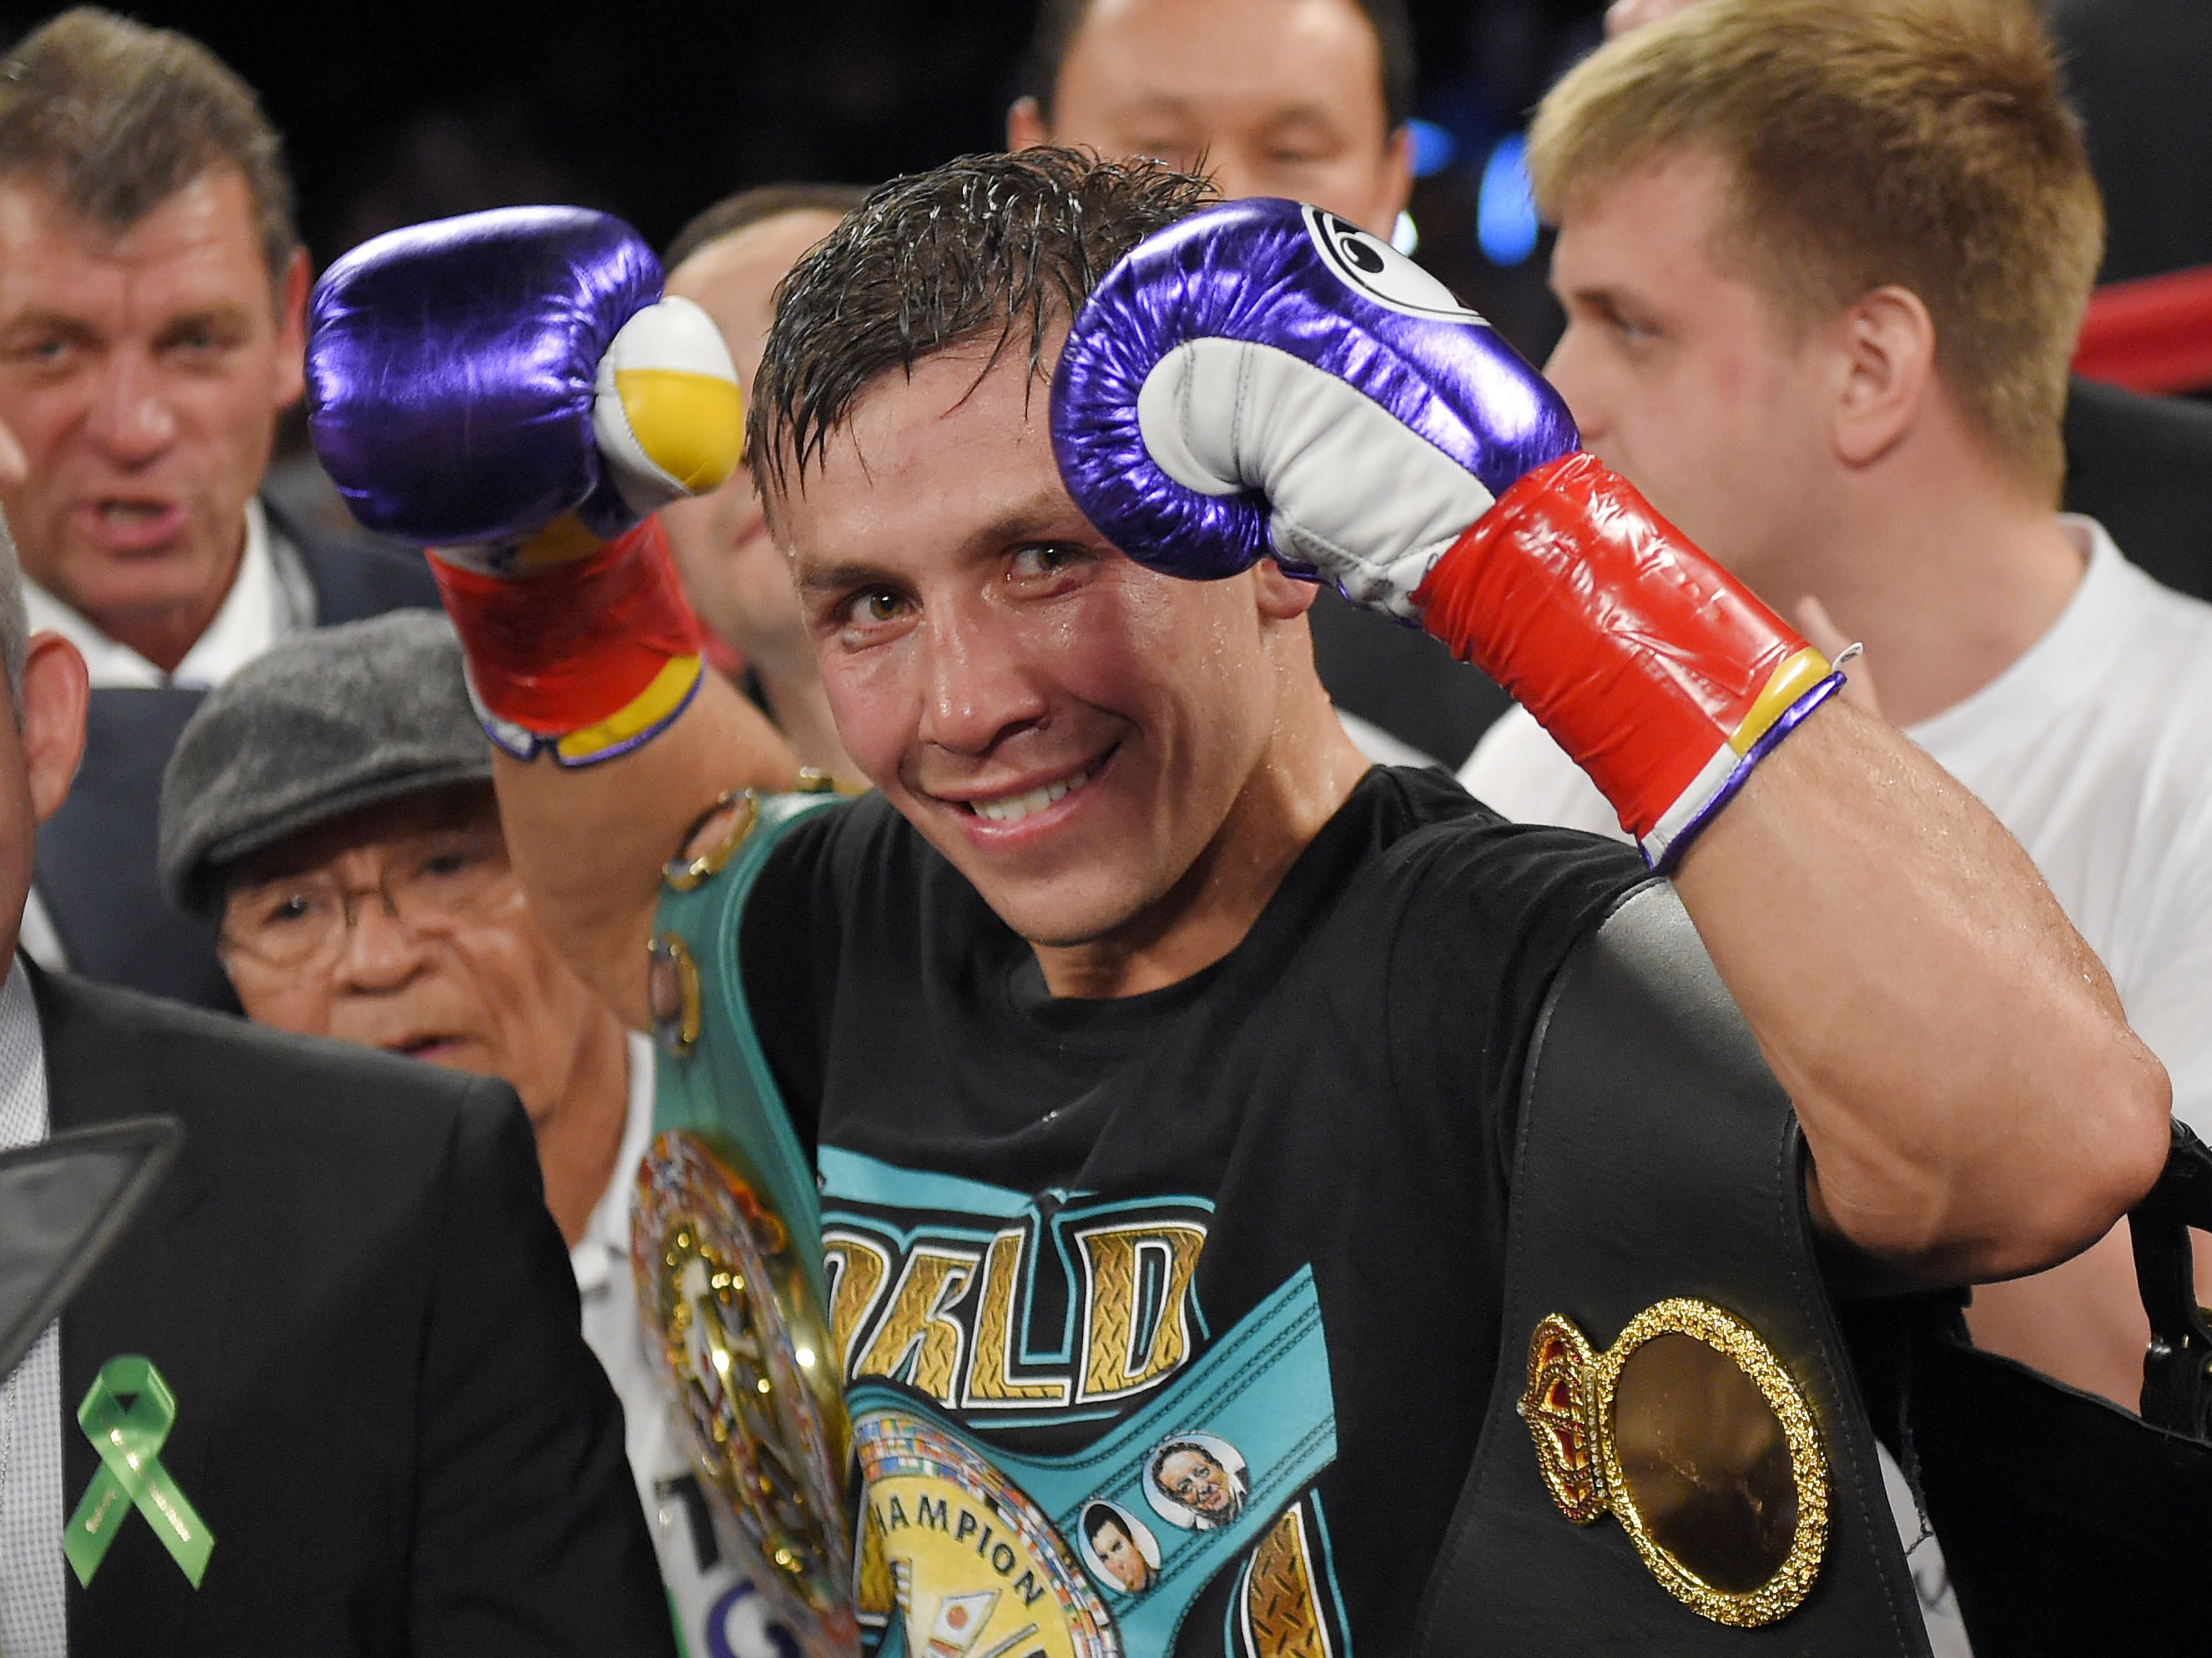 Gennady Golovkin's trainer talks about roots of GGG's style